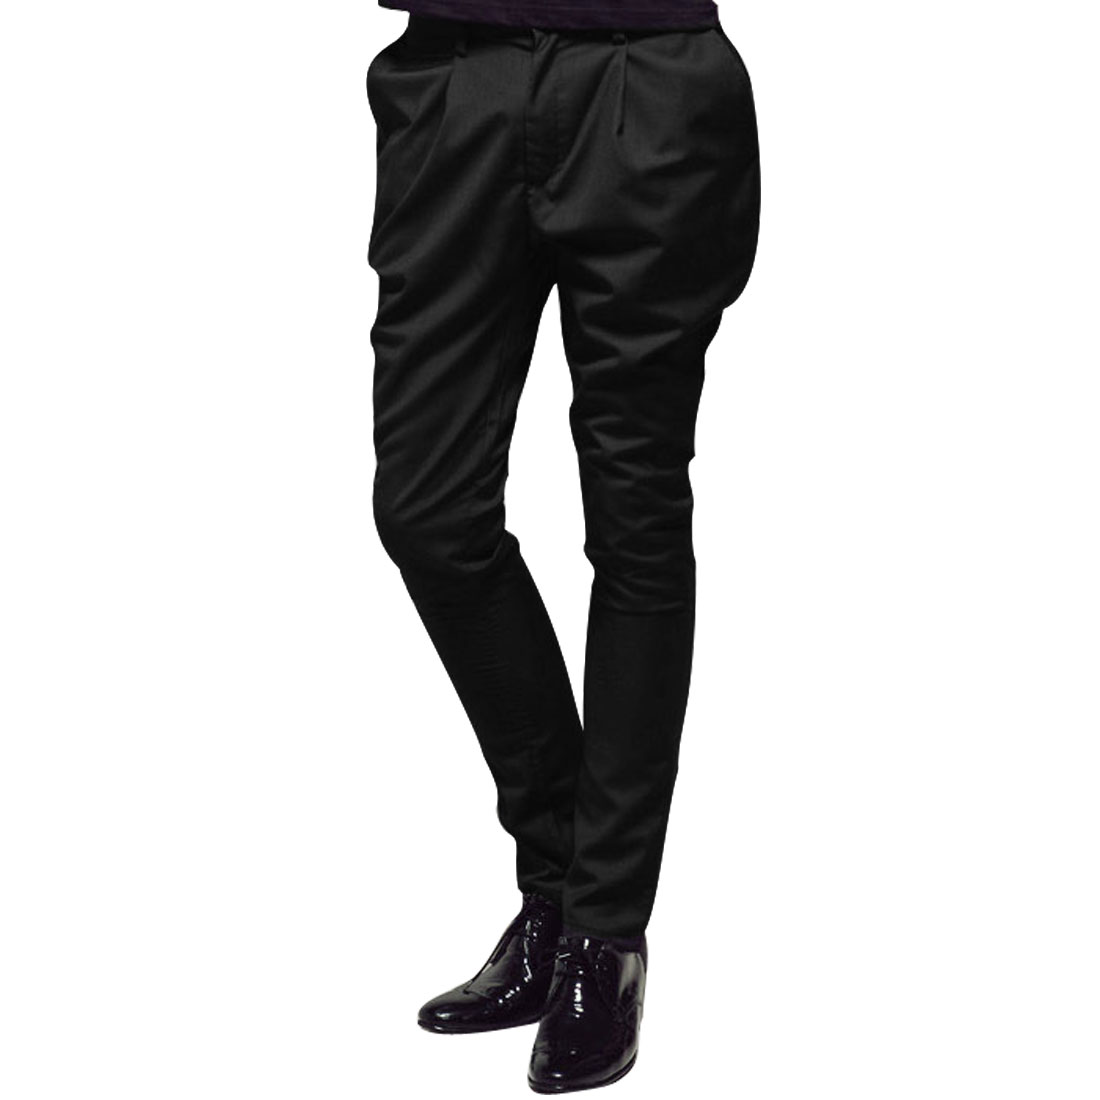 Men Belt Loops Zipper Fly Button Closure Design Casual Trousers W33 Black